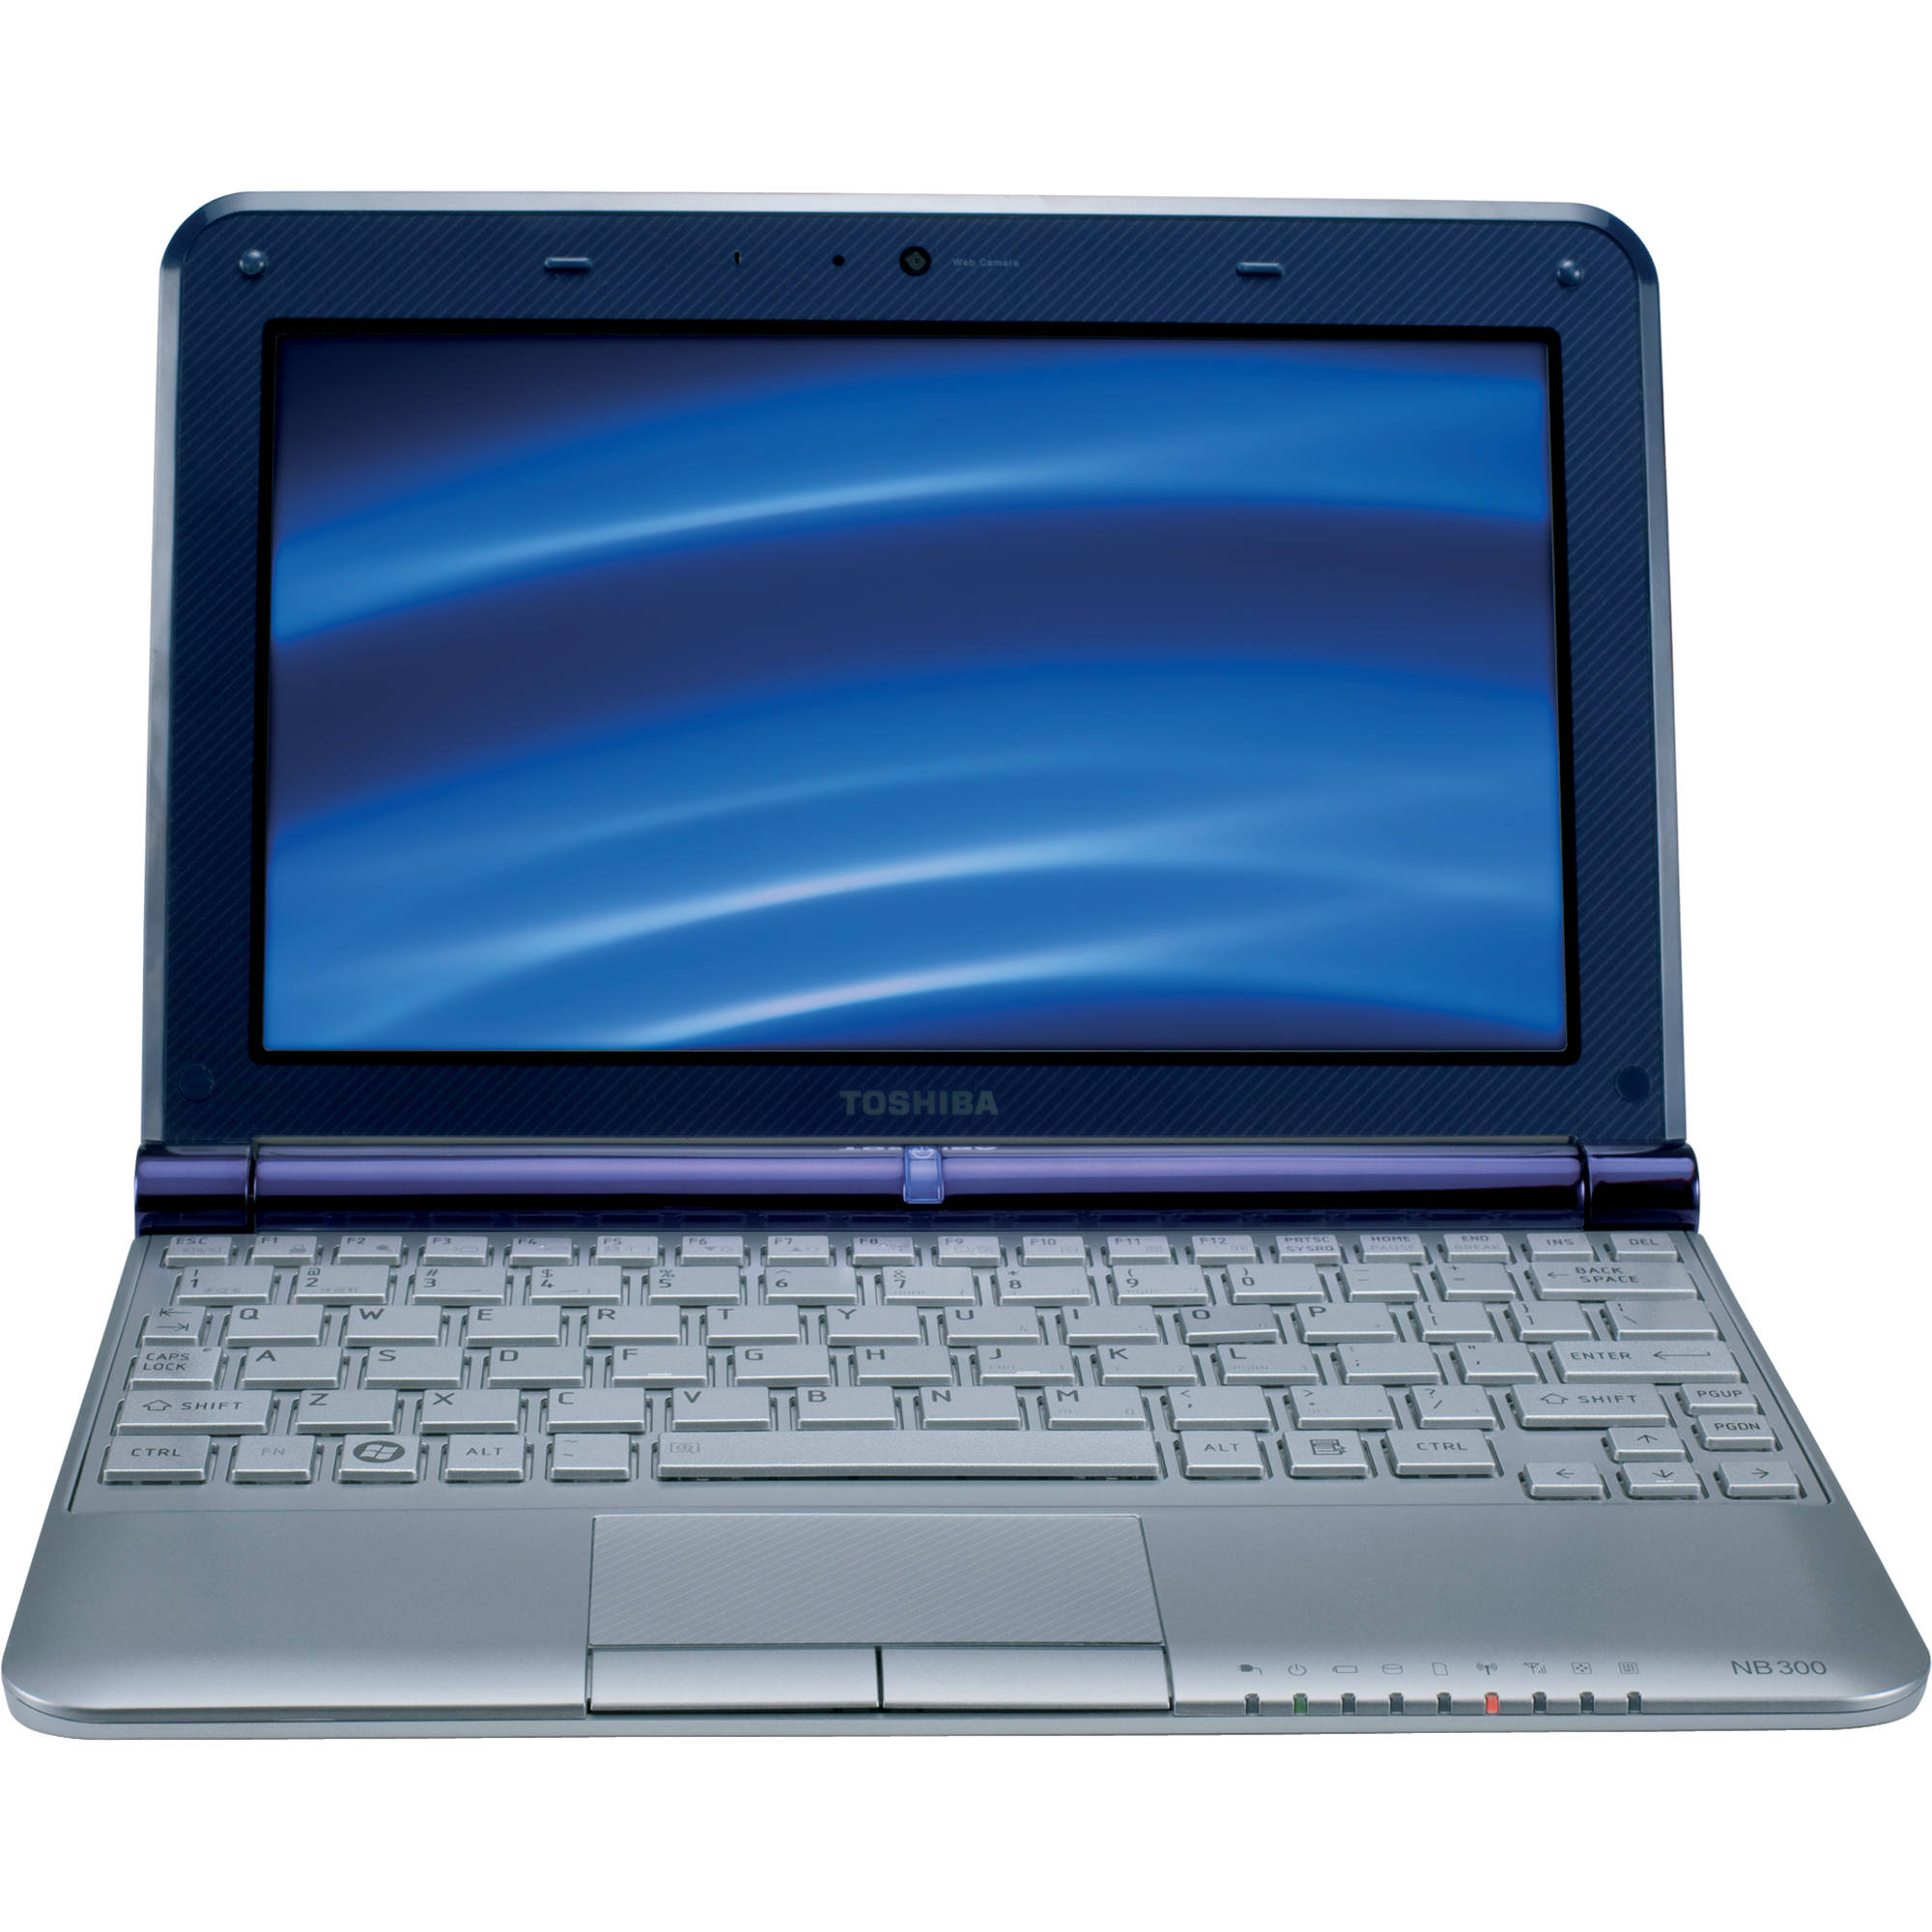 Toshiba NB305 Assist Driver Download